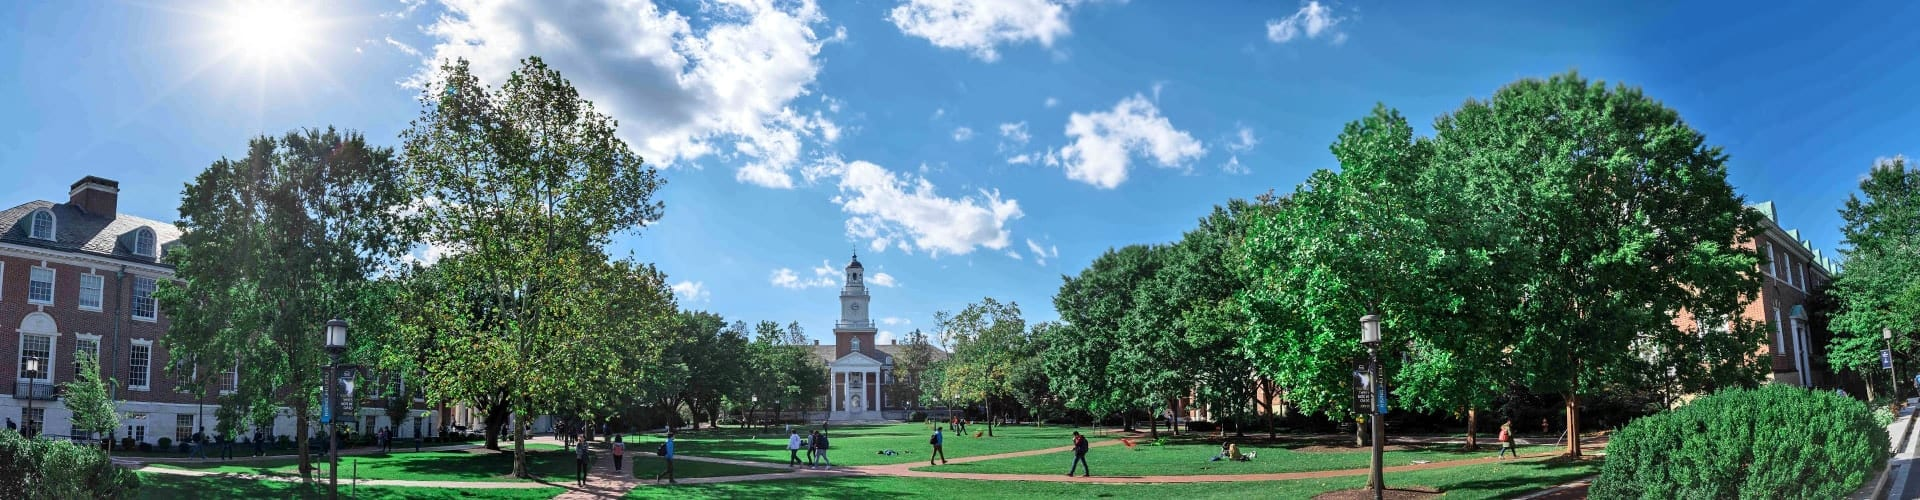 panoramic shot of green campus quad with sidewalks and brick buildings